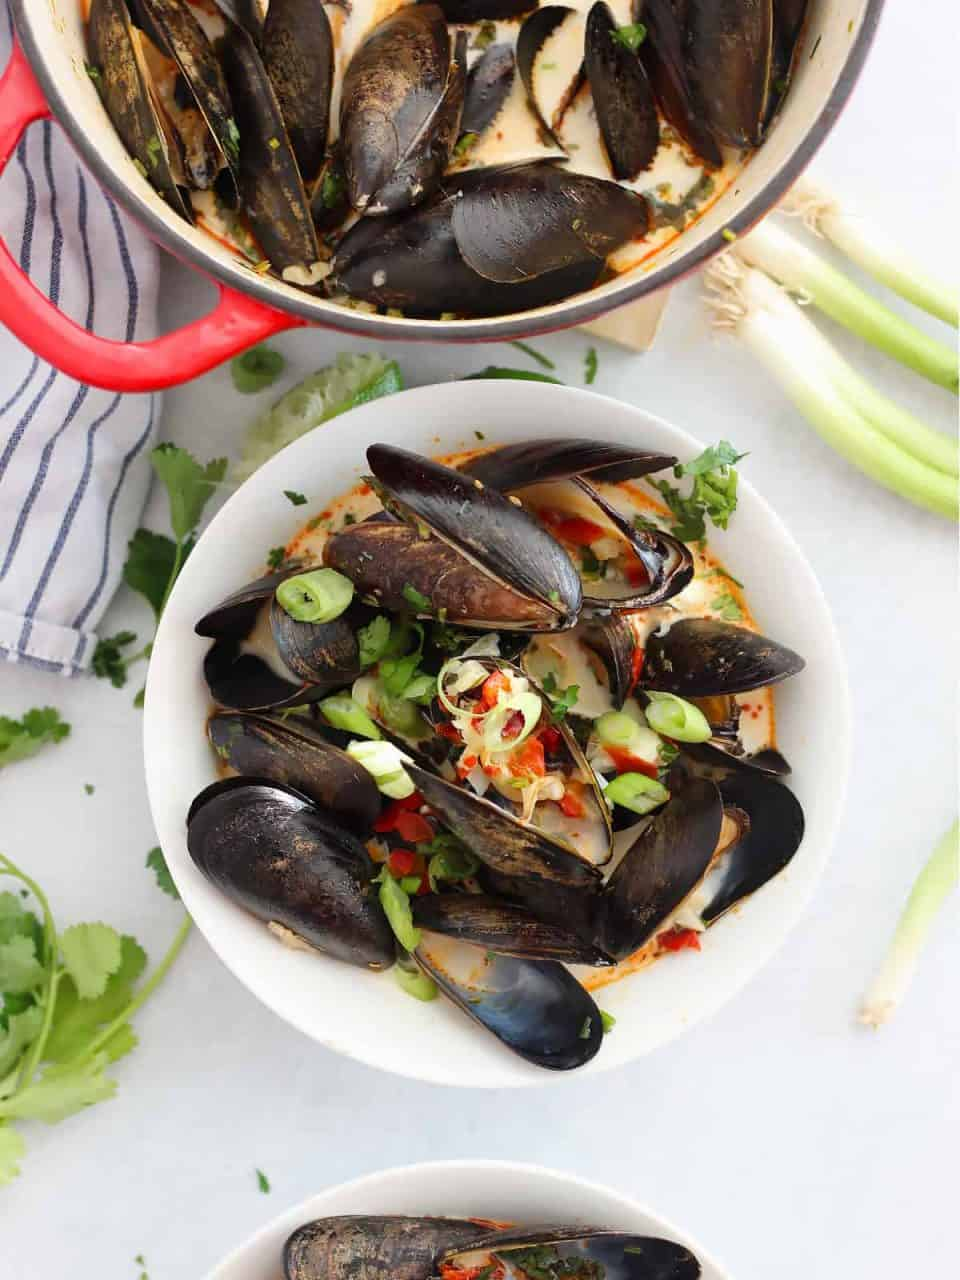 Overhead shot of mussels in a white bowl next to fresh herbs.